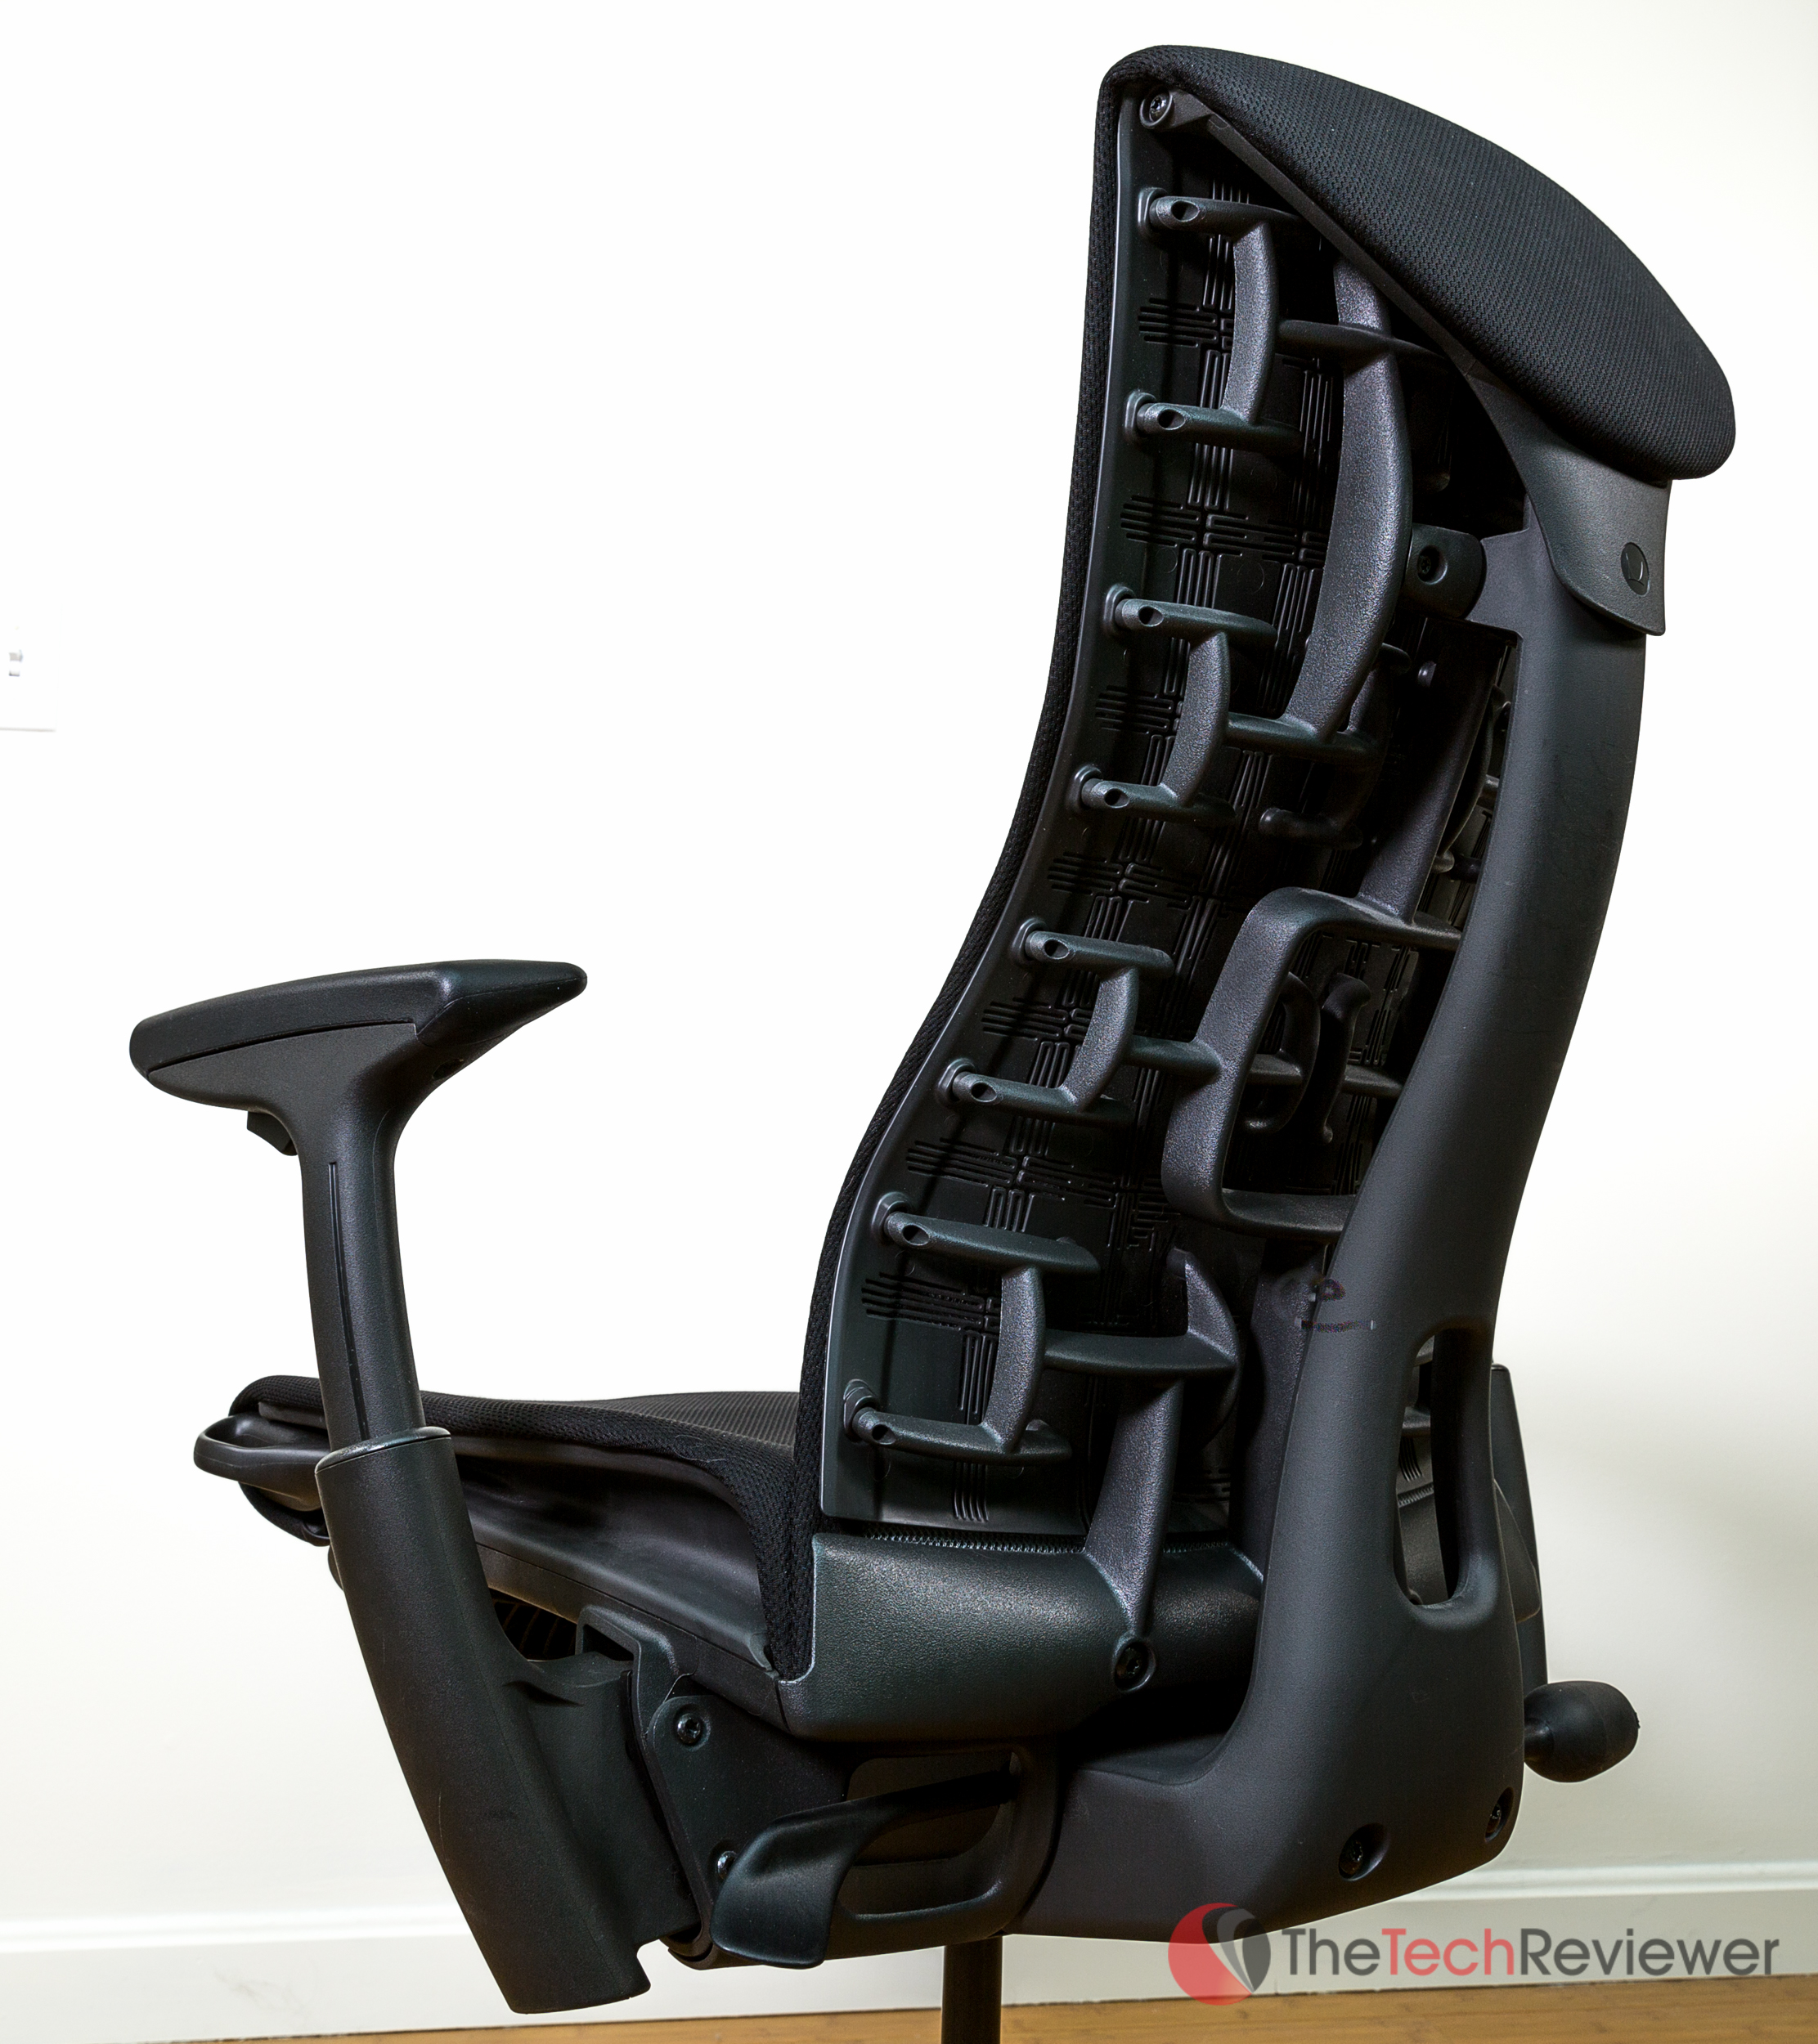 Herman Miller Embody Office Chair Review Worth The Price